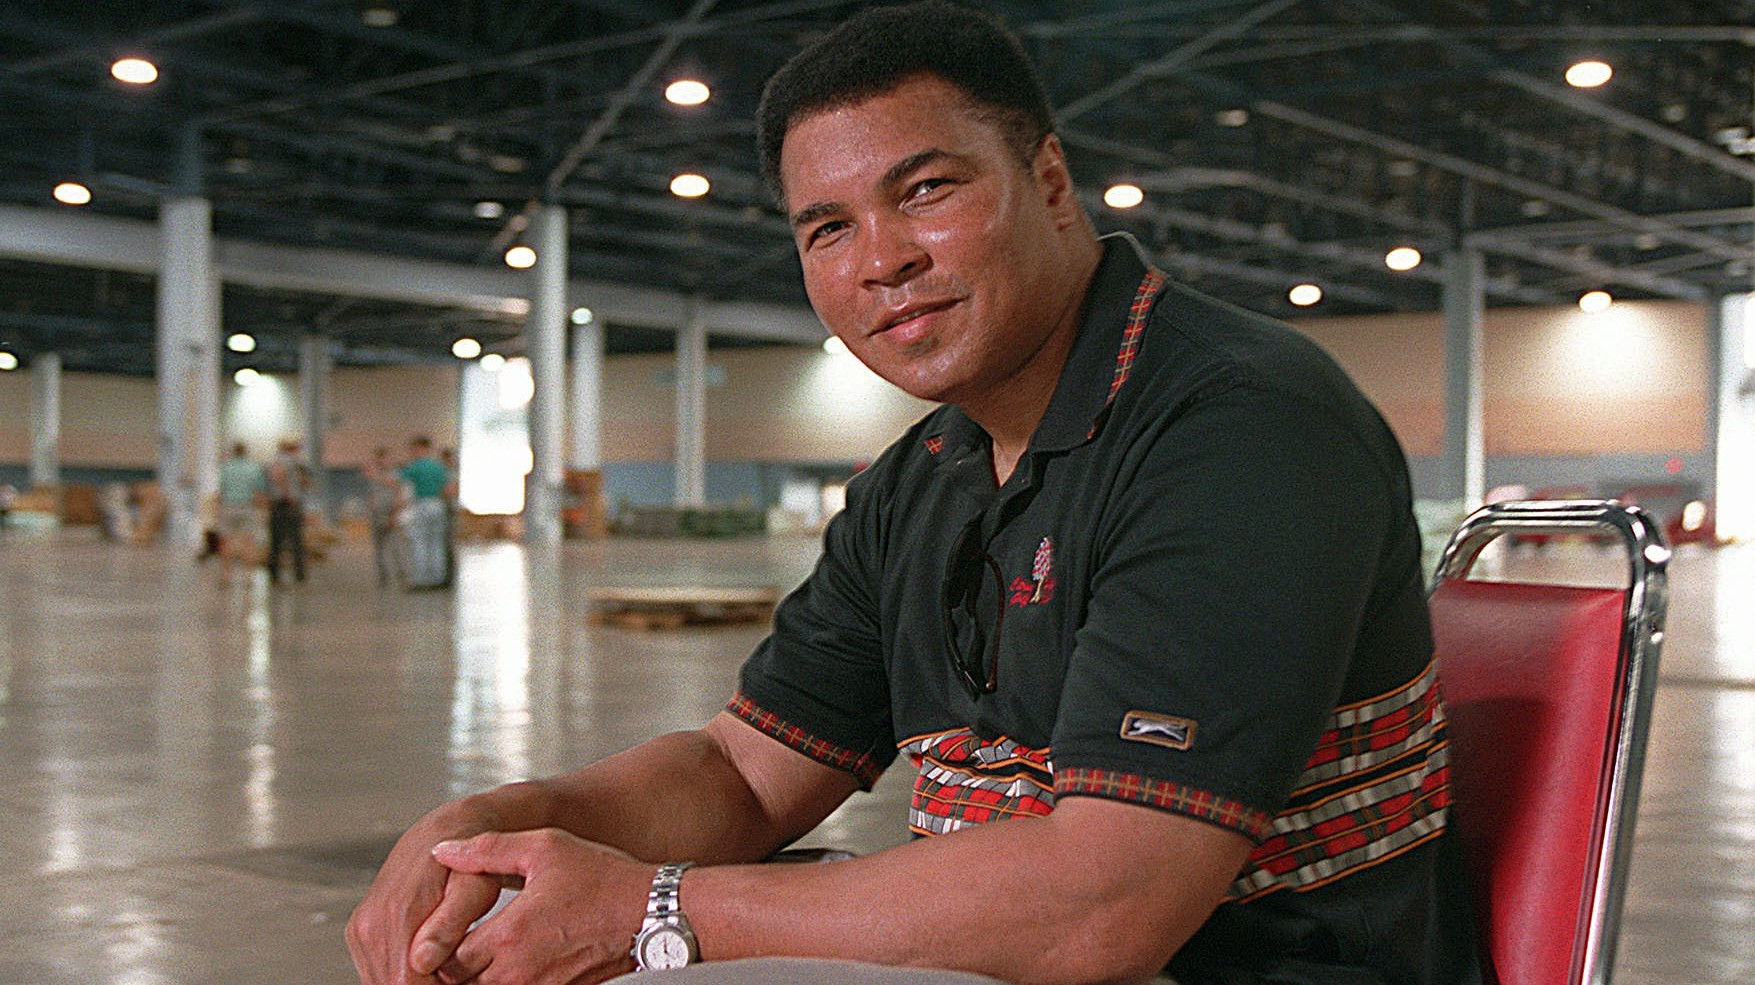 The Champ At Rest: Muhammad Ali In His Later Years